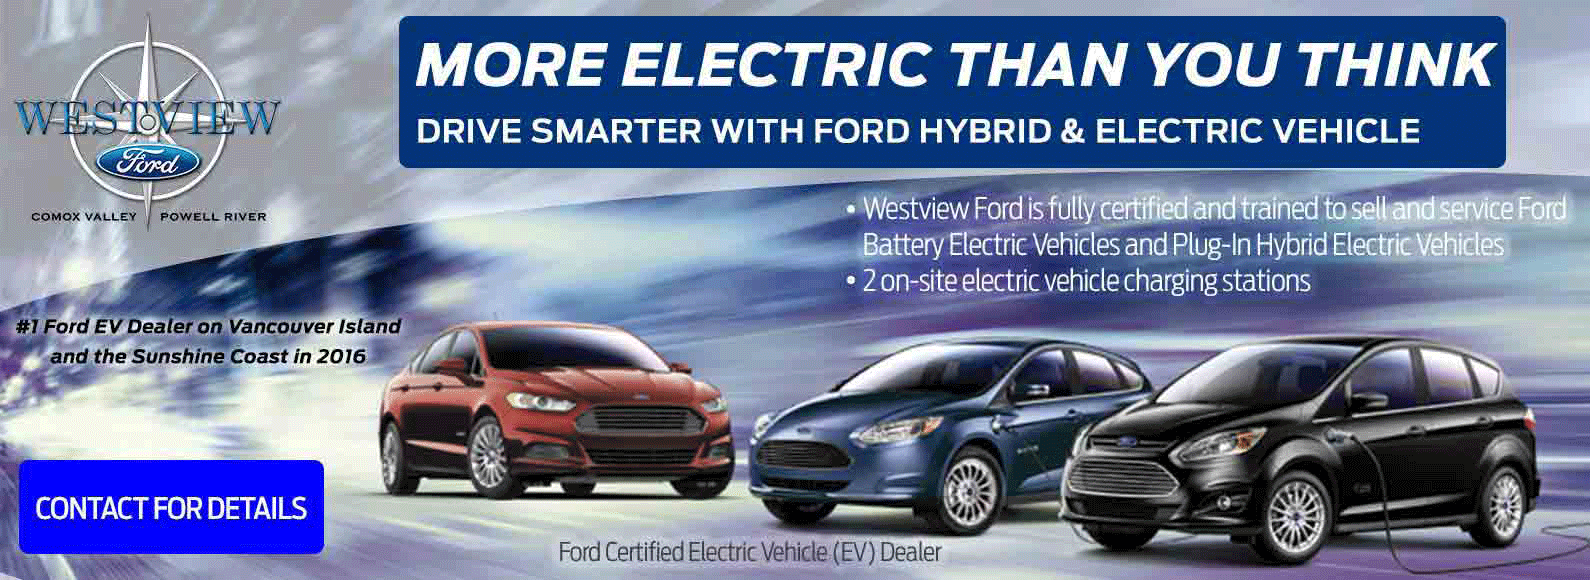 Electric Vehicles and Hybrid Vehicles at Westview Ford